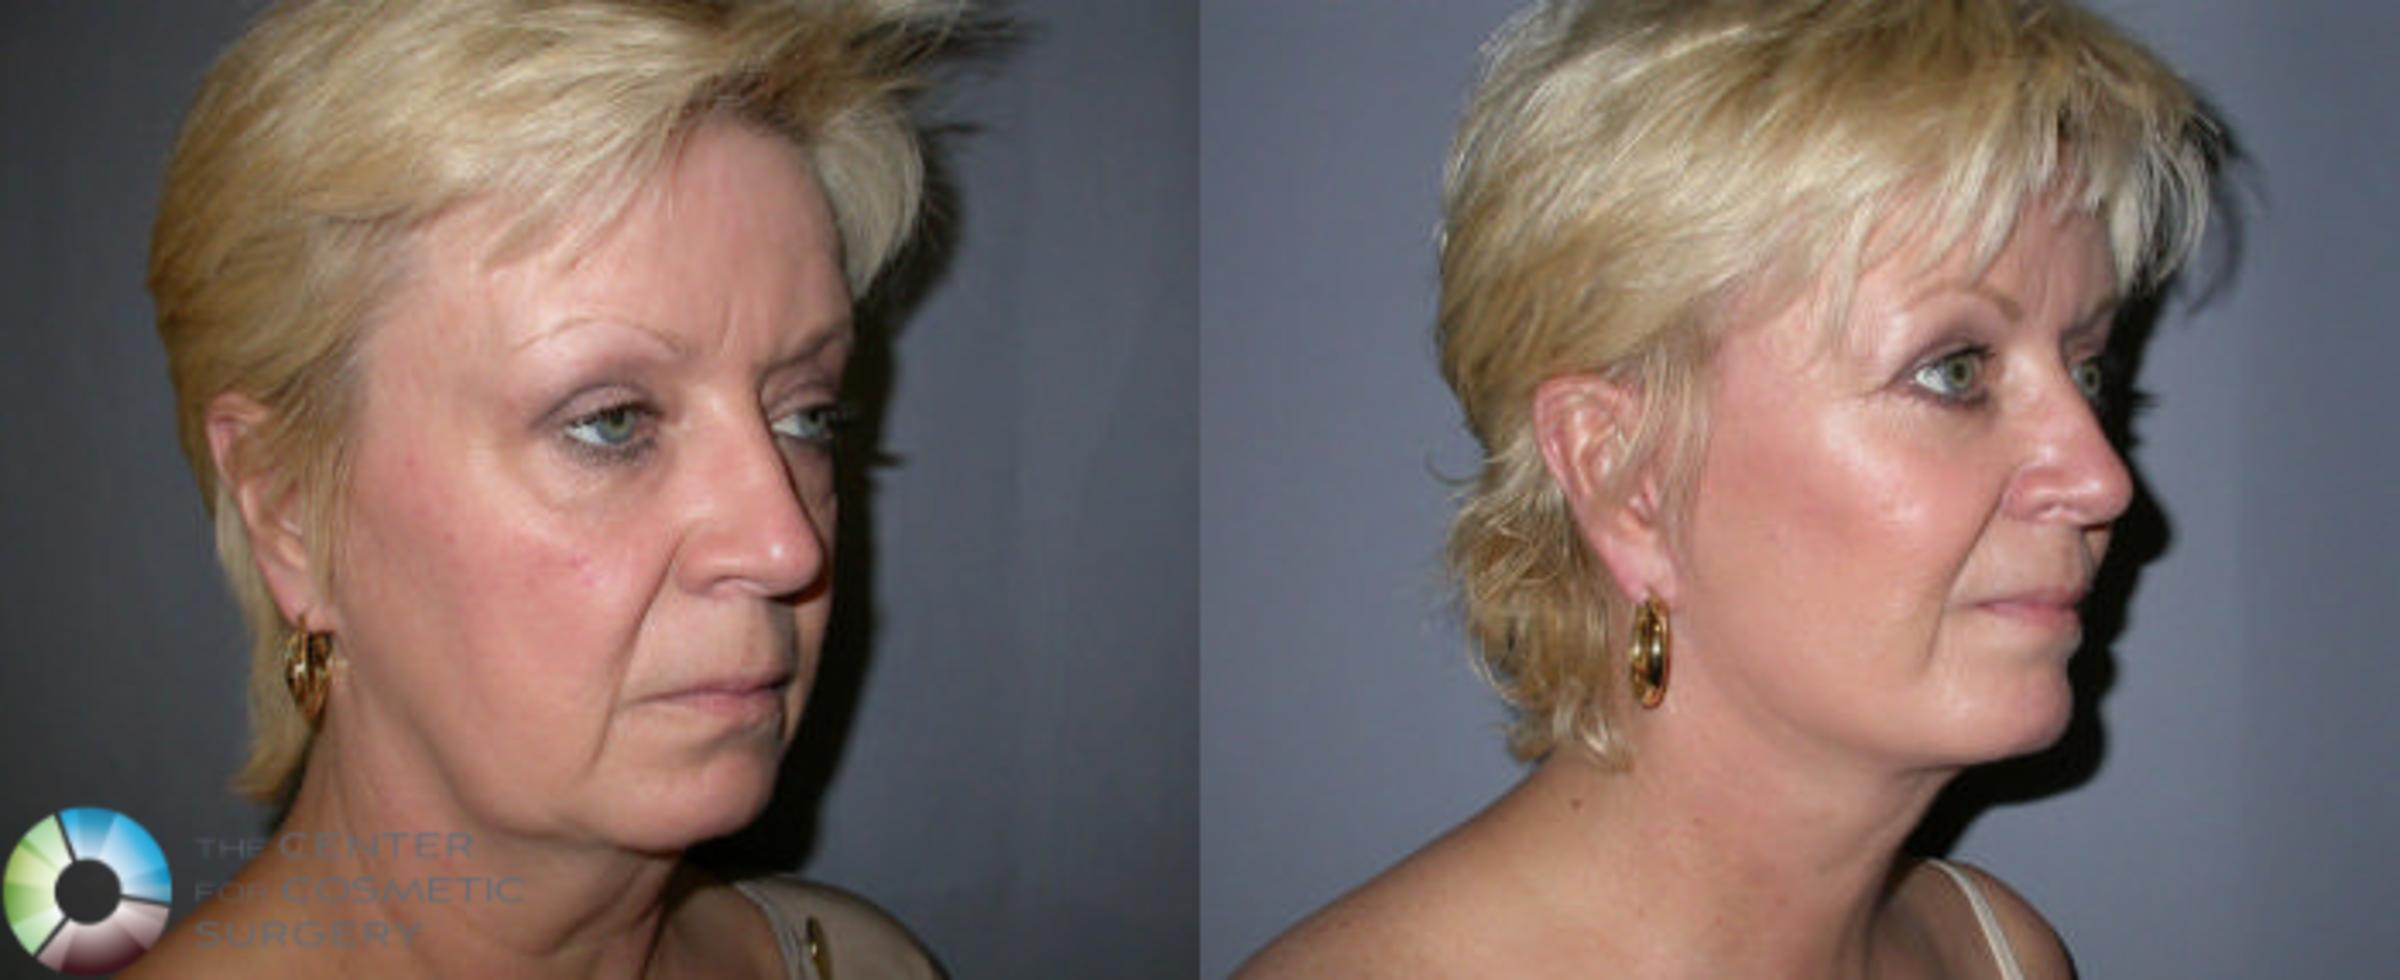 Eyelid Lift Case 2 Before & After View #1 | Golden, CO | The Center for Cosmetic Surgery